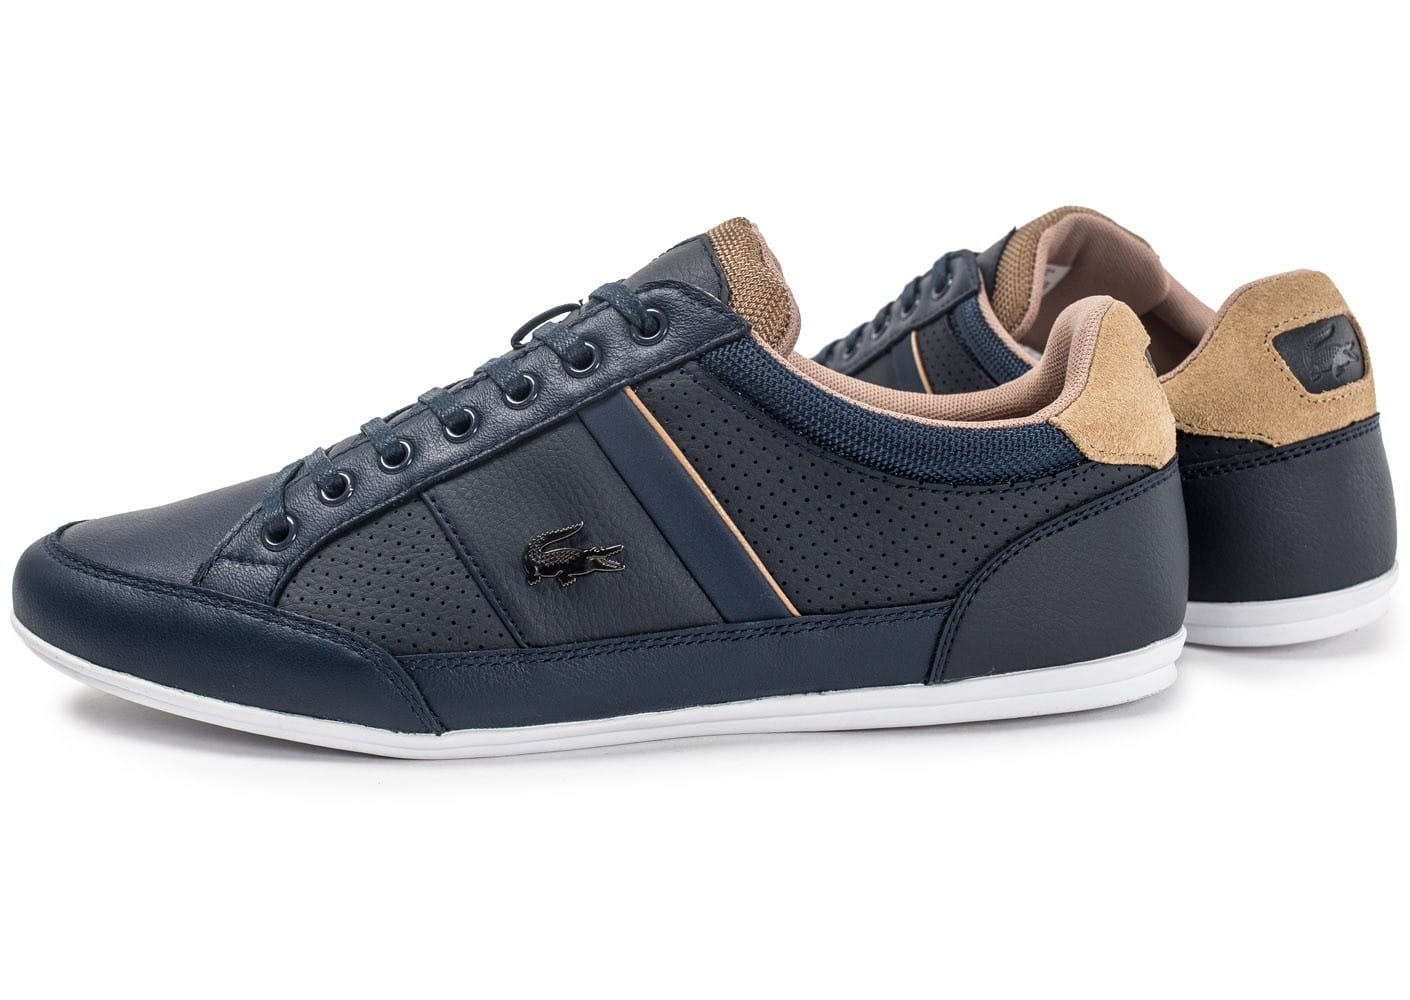 Chaussures 38 Fashion Gdq4vh